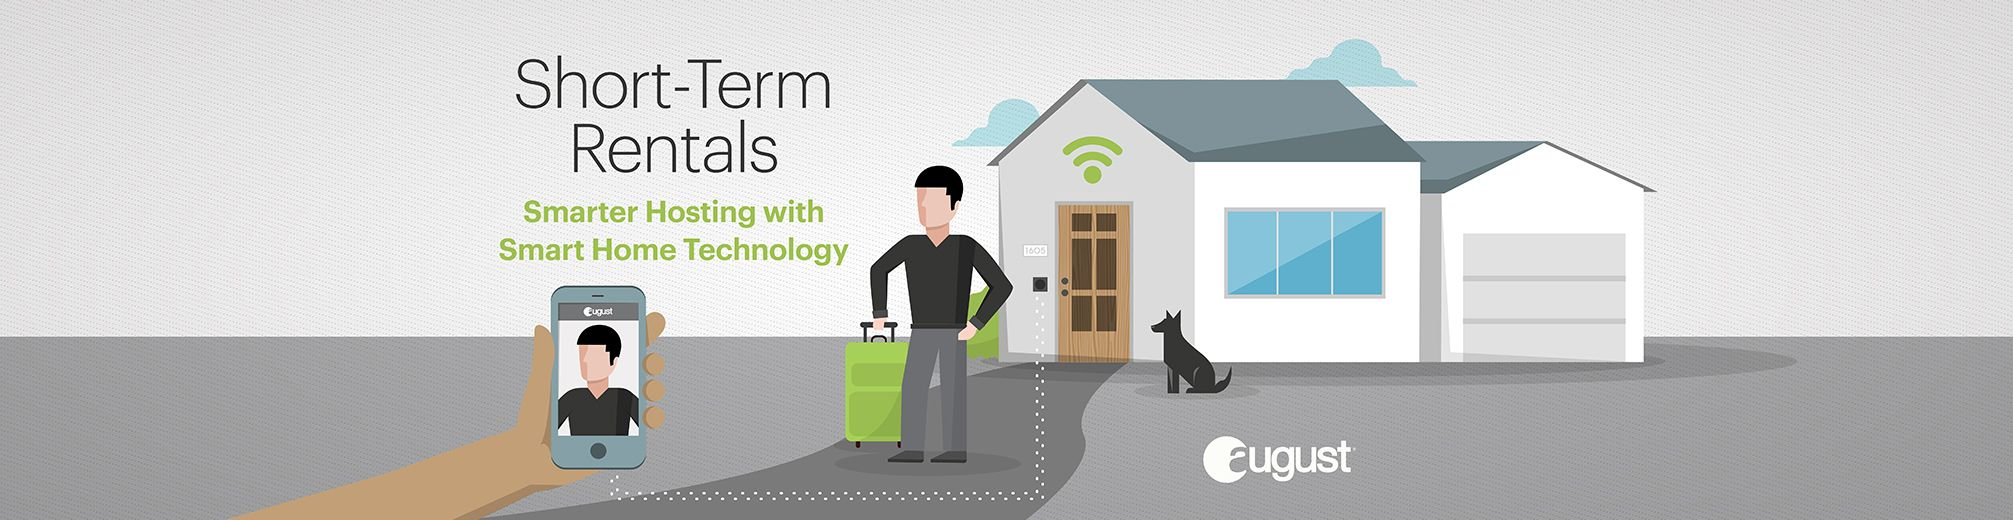 Research: Smarter Hosting With Smart Home Tech